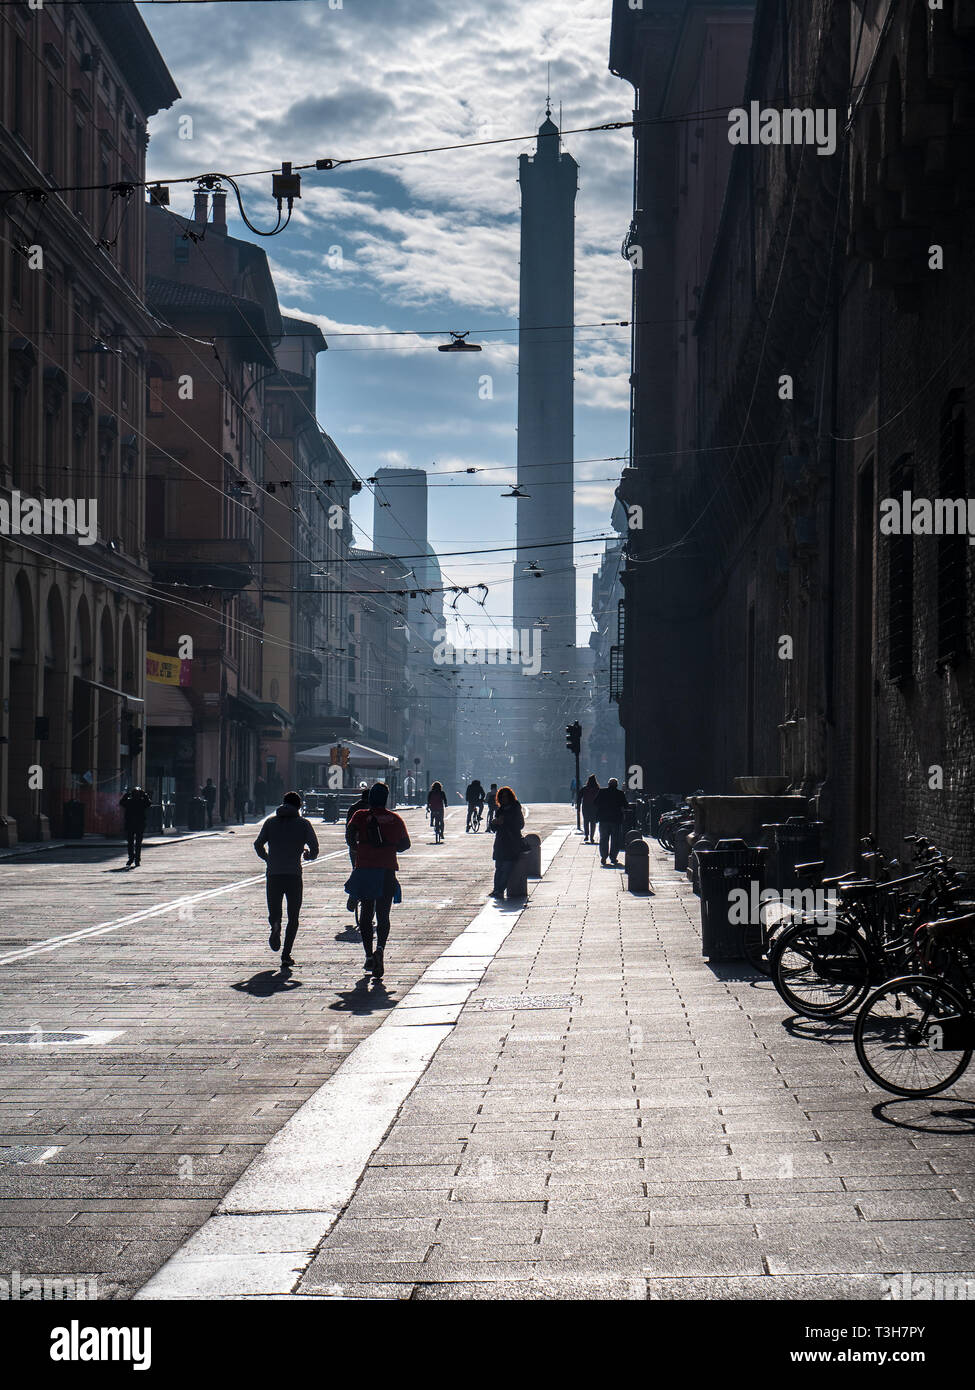 Sunday Morning runners in Bologna City Centre with the Twin Towers, Garisenda Tower and the Asinelli Tower in the distance. - Stock Image